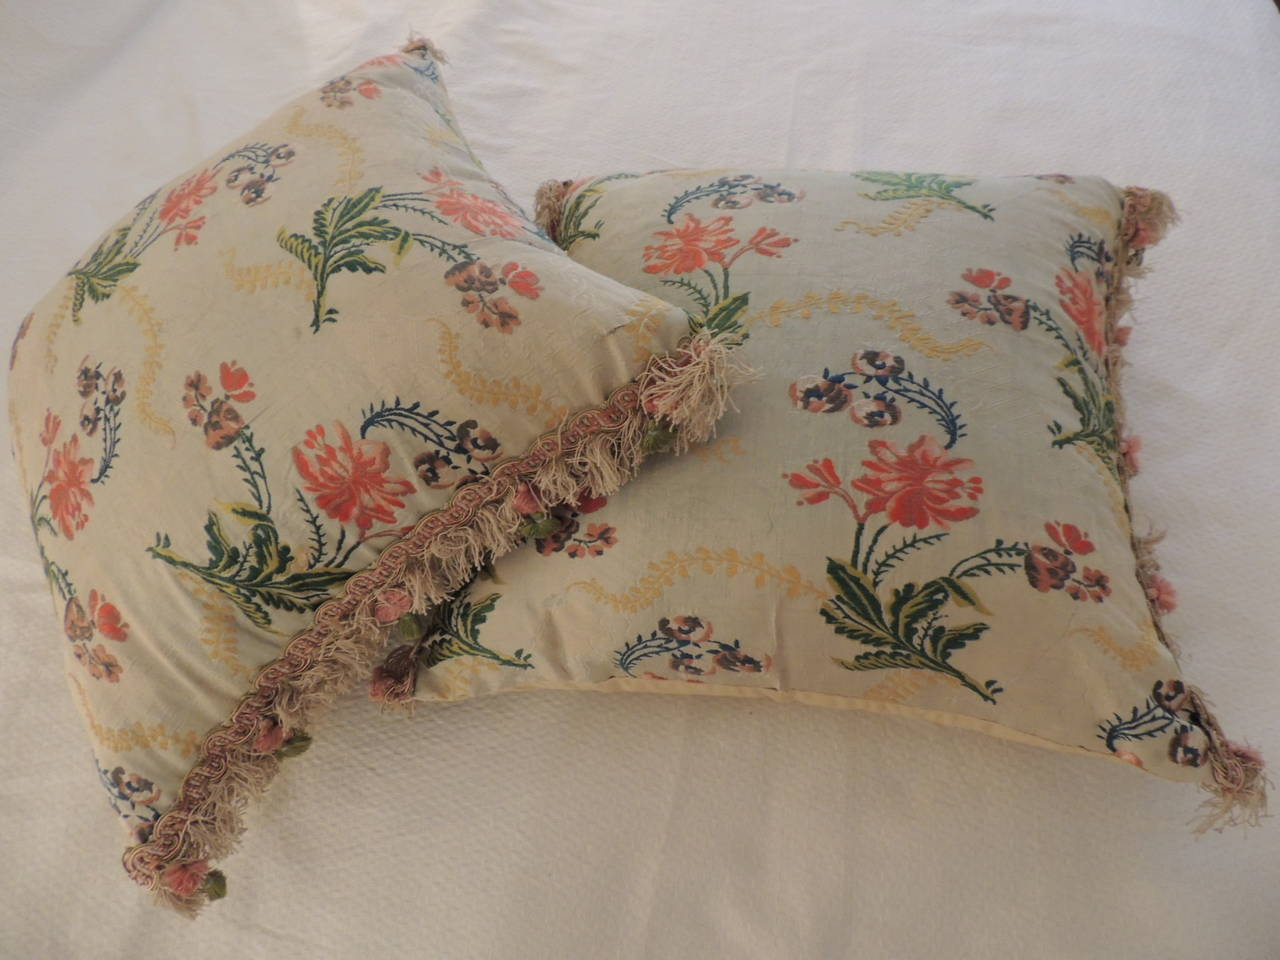 Hand-Crafted Pair of Antique Silk Brocade Floral Decorative Pillows  For Sale